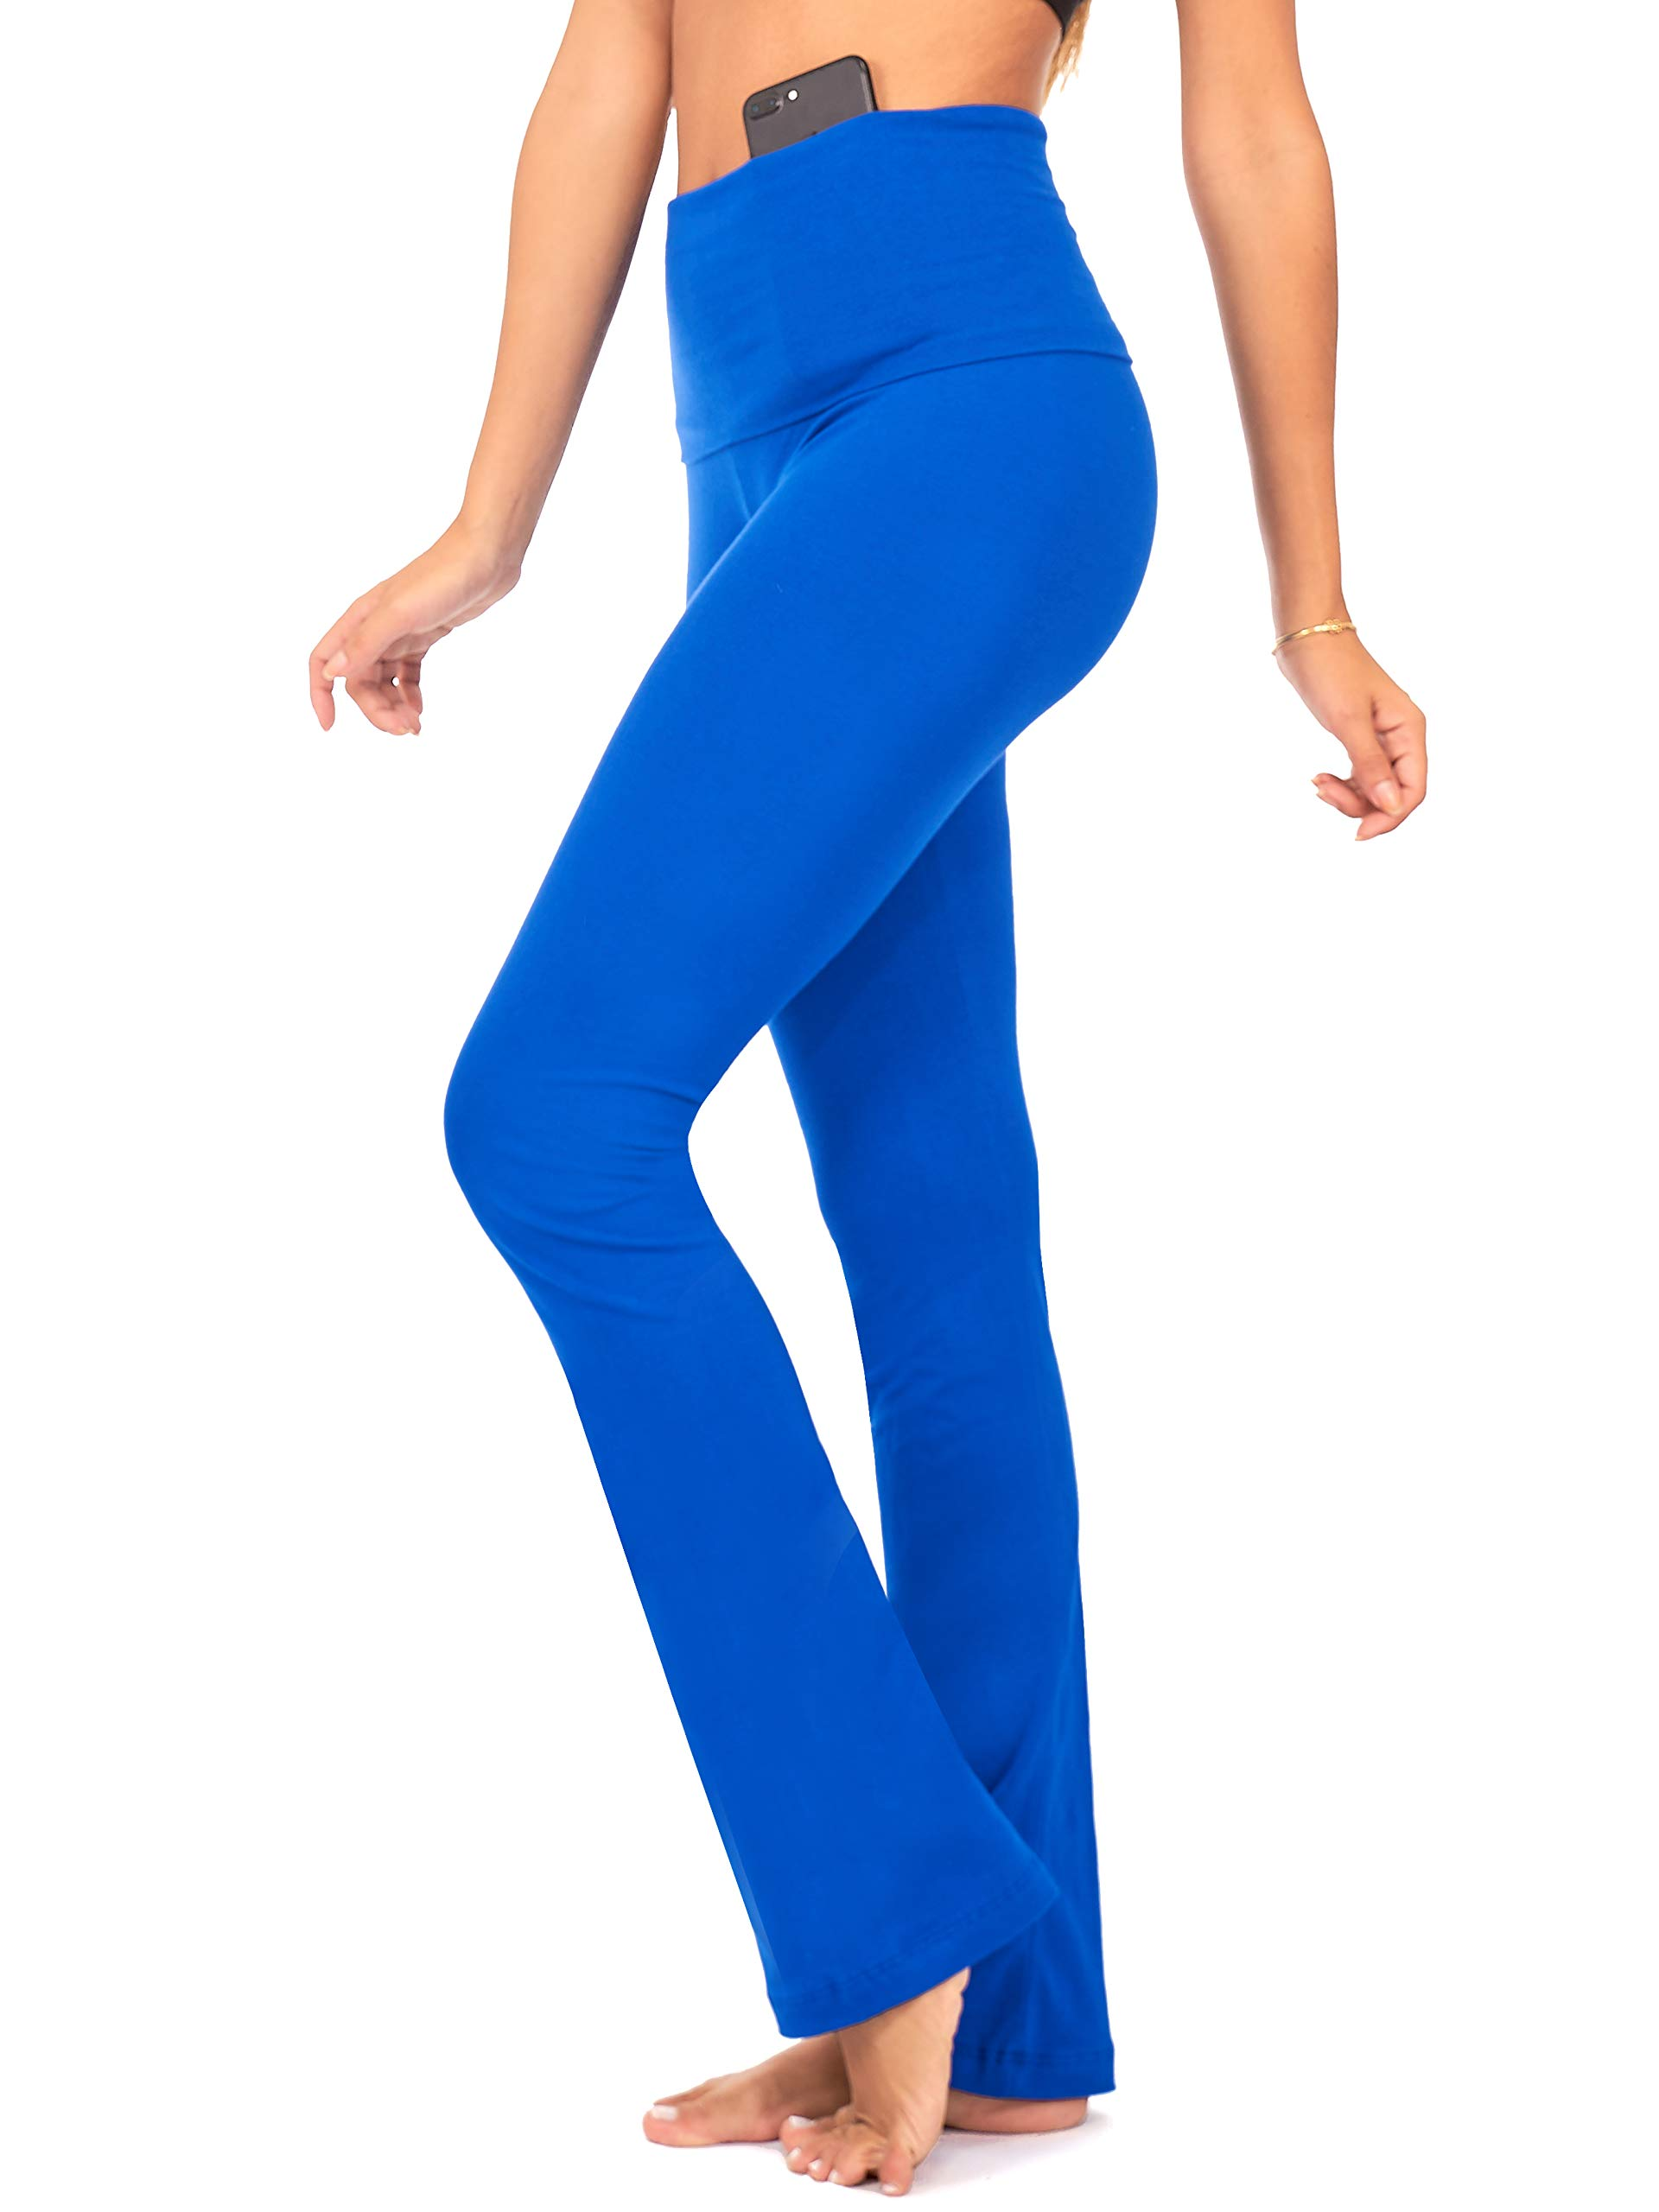 DEAR SPARKLE Bootcut Fold Over Leggings for Women | Slim Look Bootleg Yoga Pants w Pocket + Plus Size (C5 F)